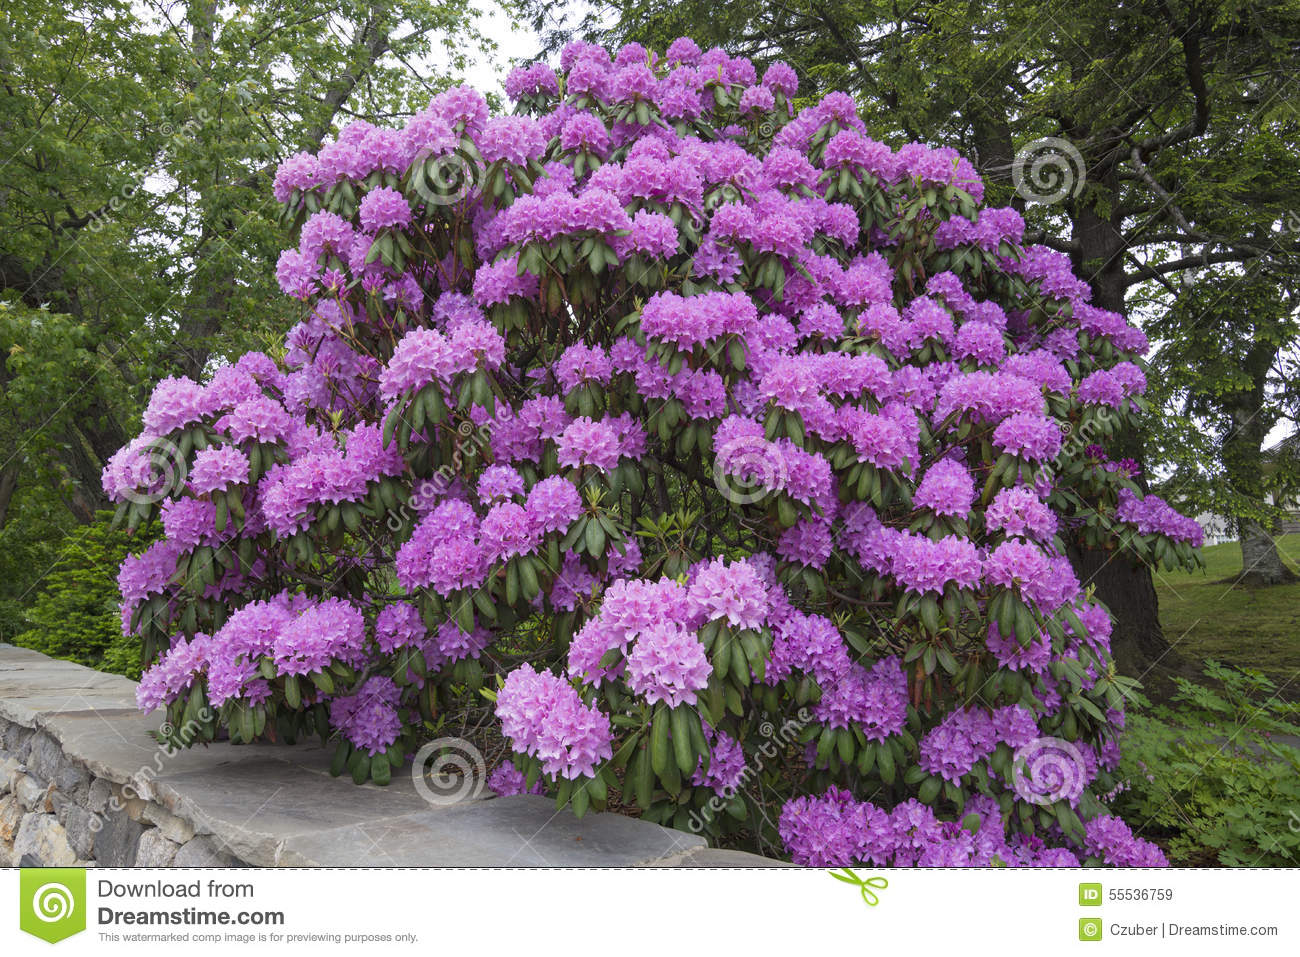 Huge Rhododendron Flowers In Full Bloom Stock Image Image Of